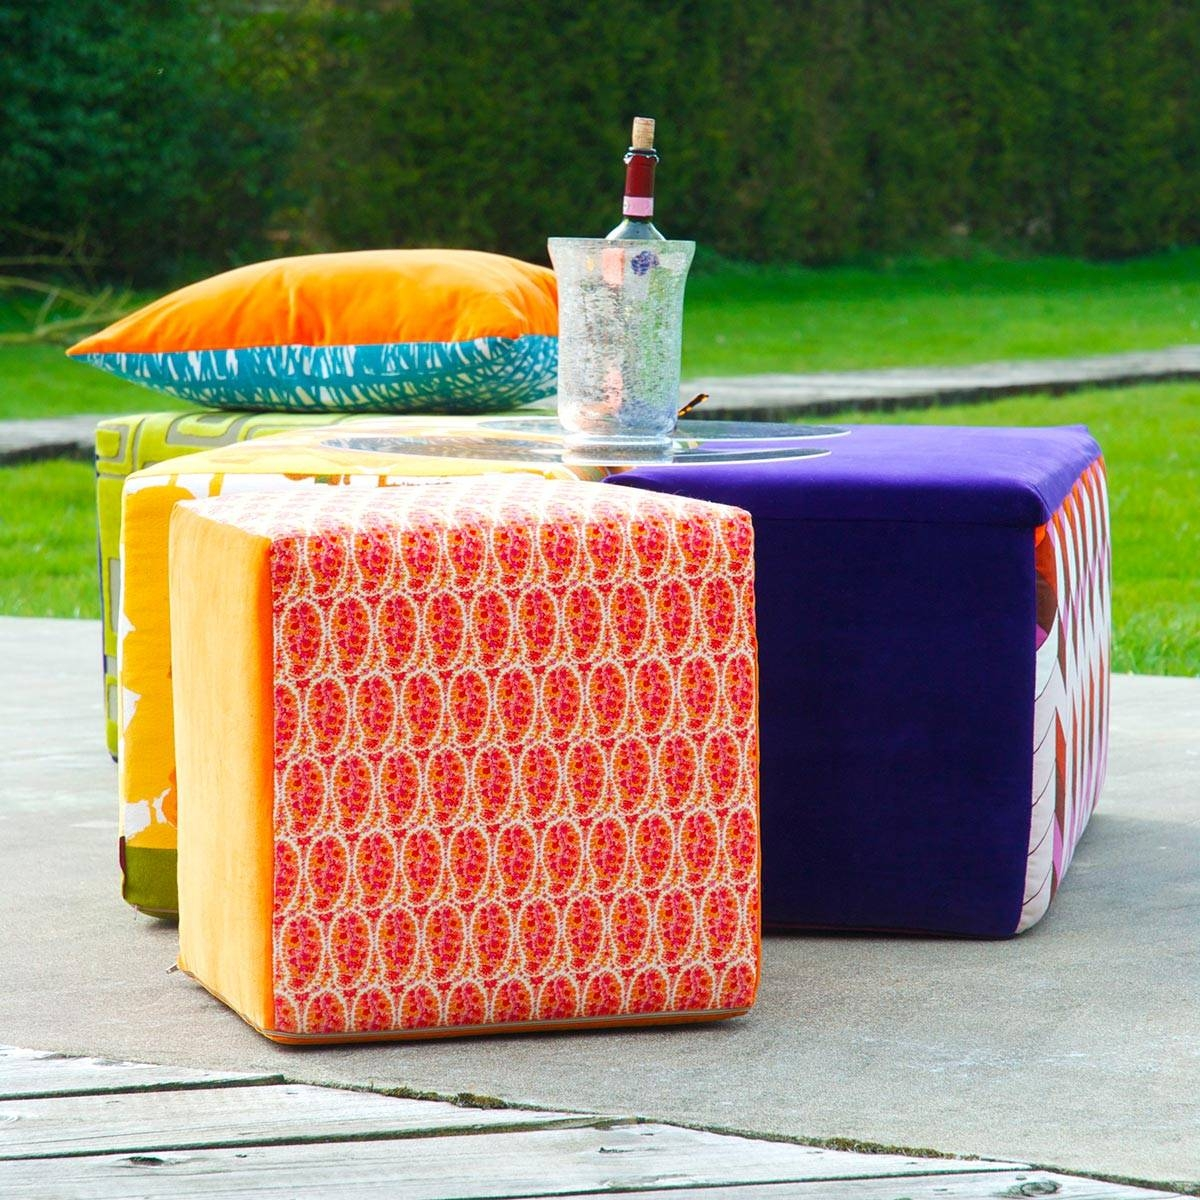 Beautiful And Eye-Catching Footstools And Pouffes - Crushcube with regard to Footstools and Pouffes (Image 1 of 30)